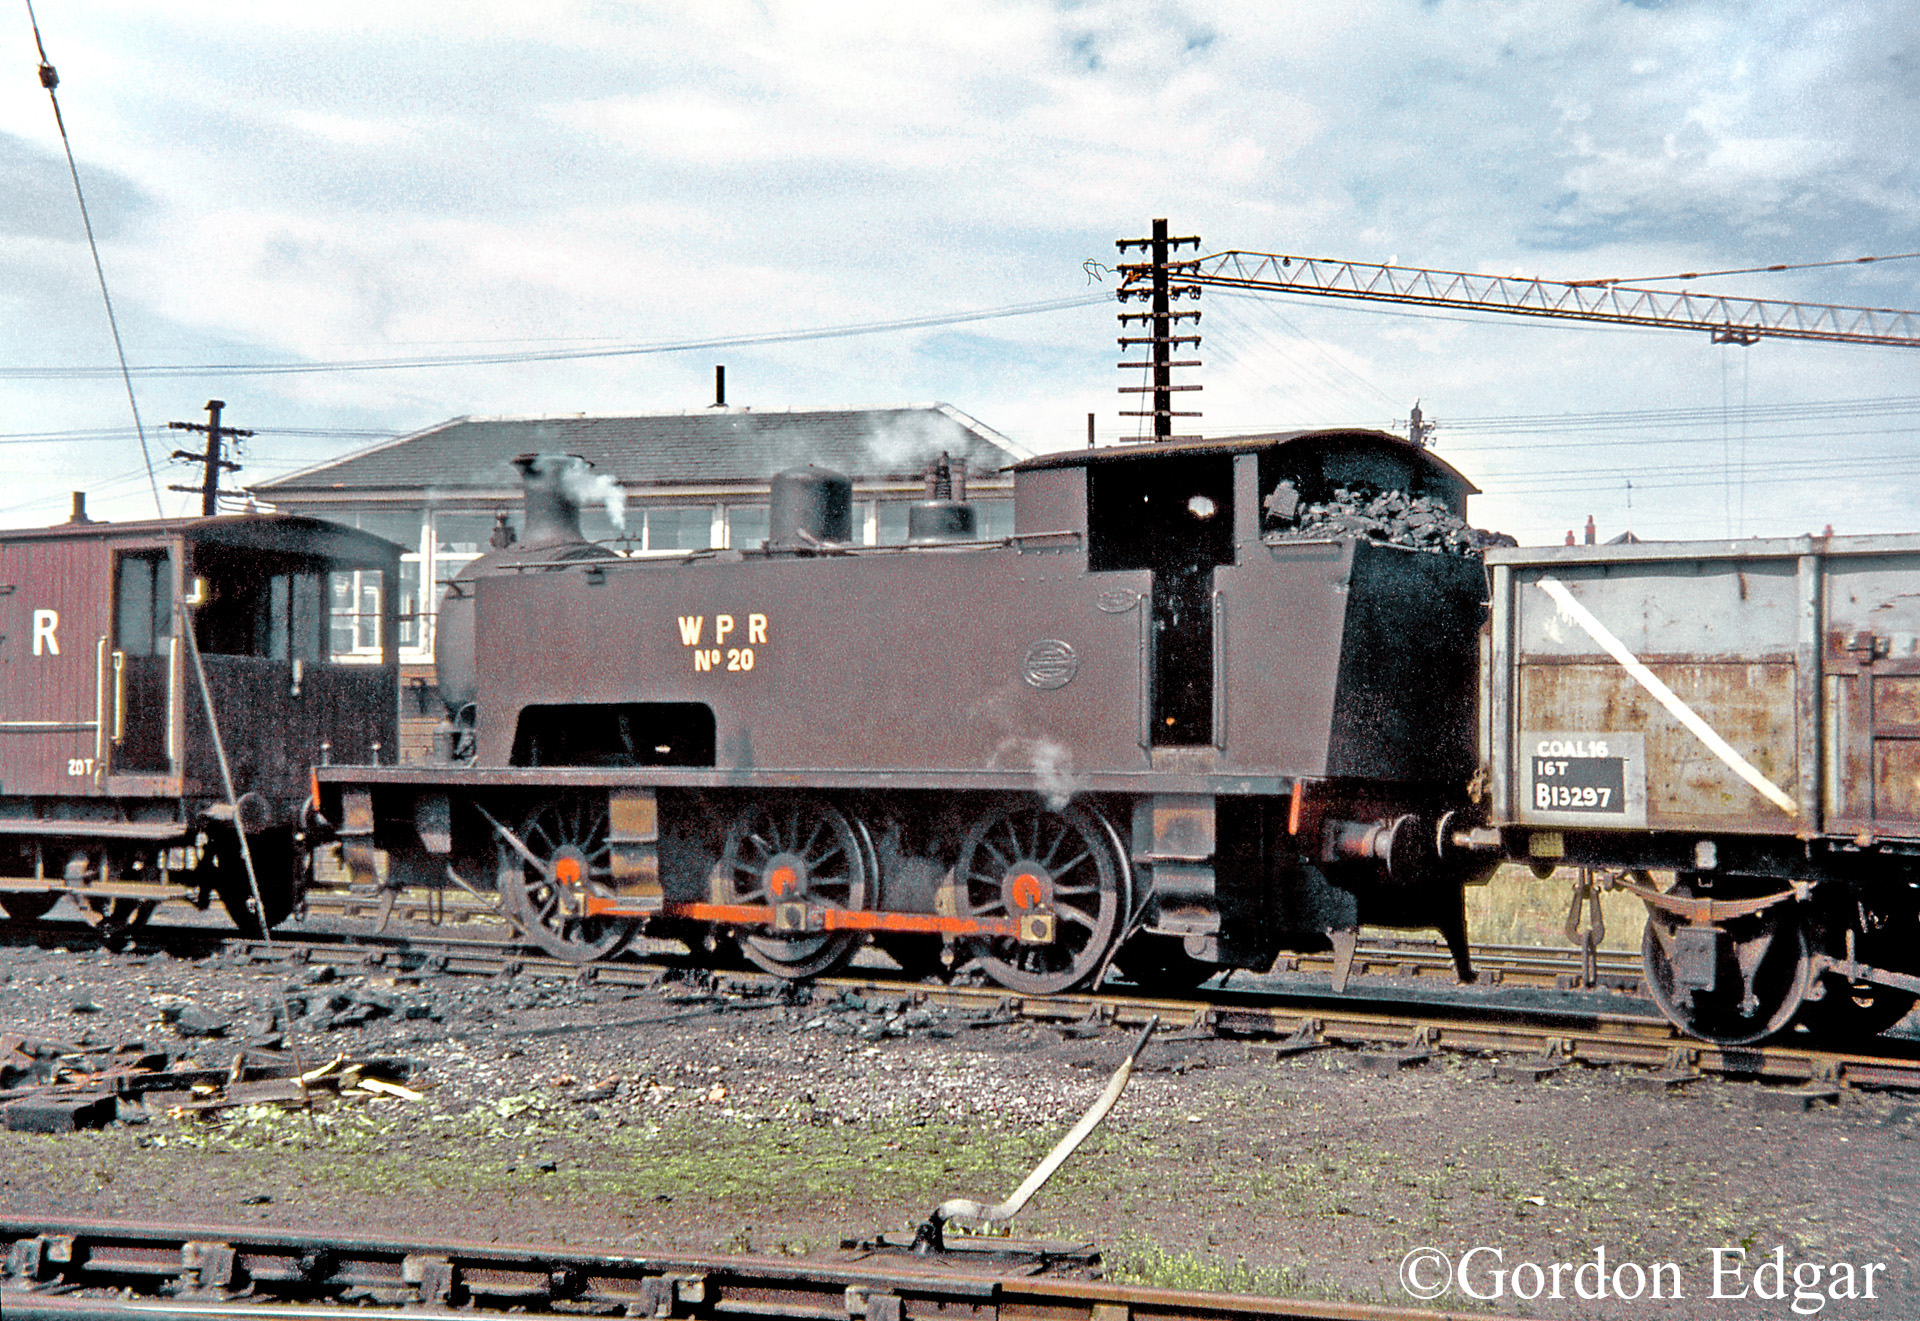 AB2068-Wemyss Private Railway-Methil-August 1969.jpg